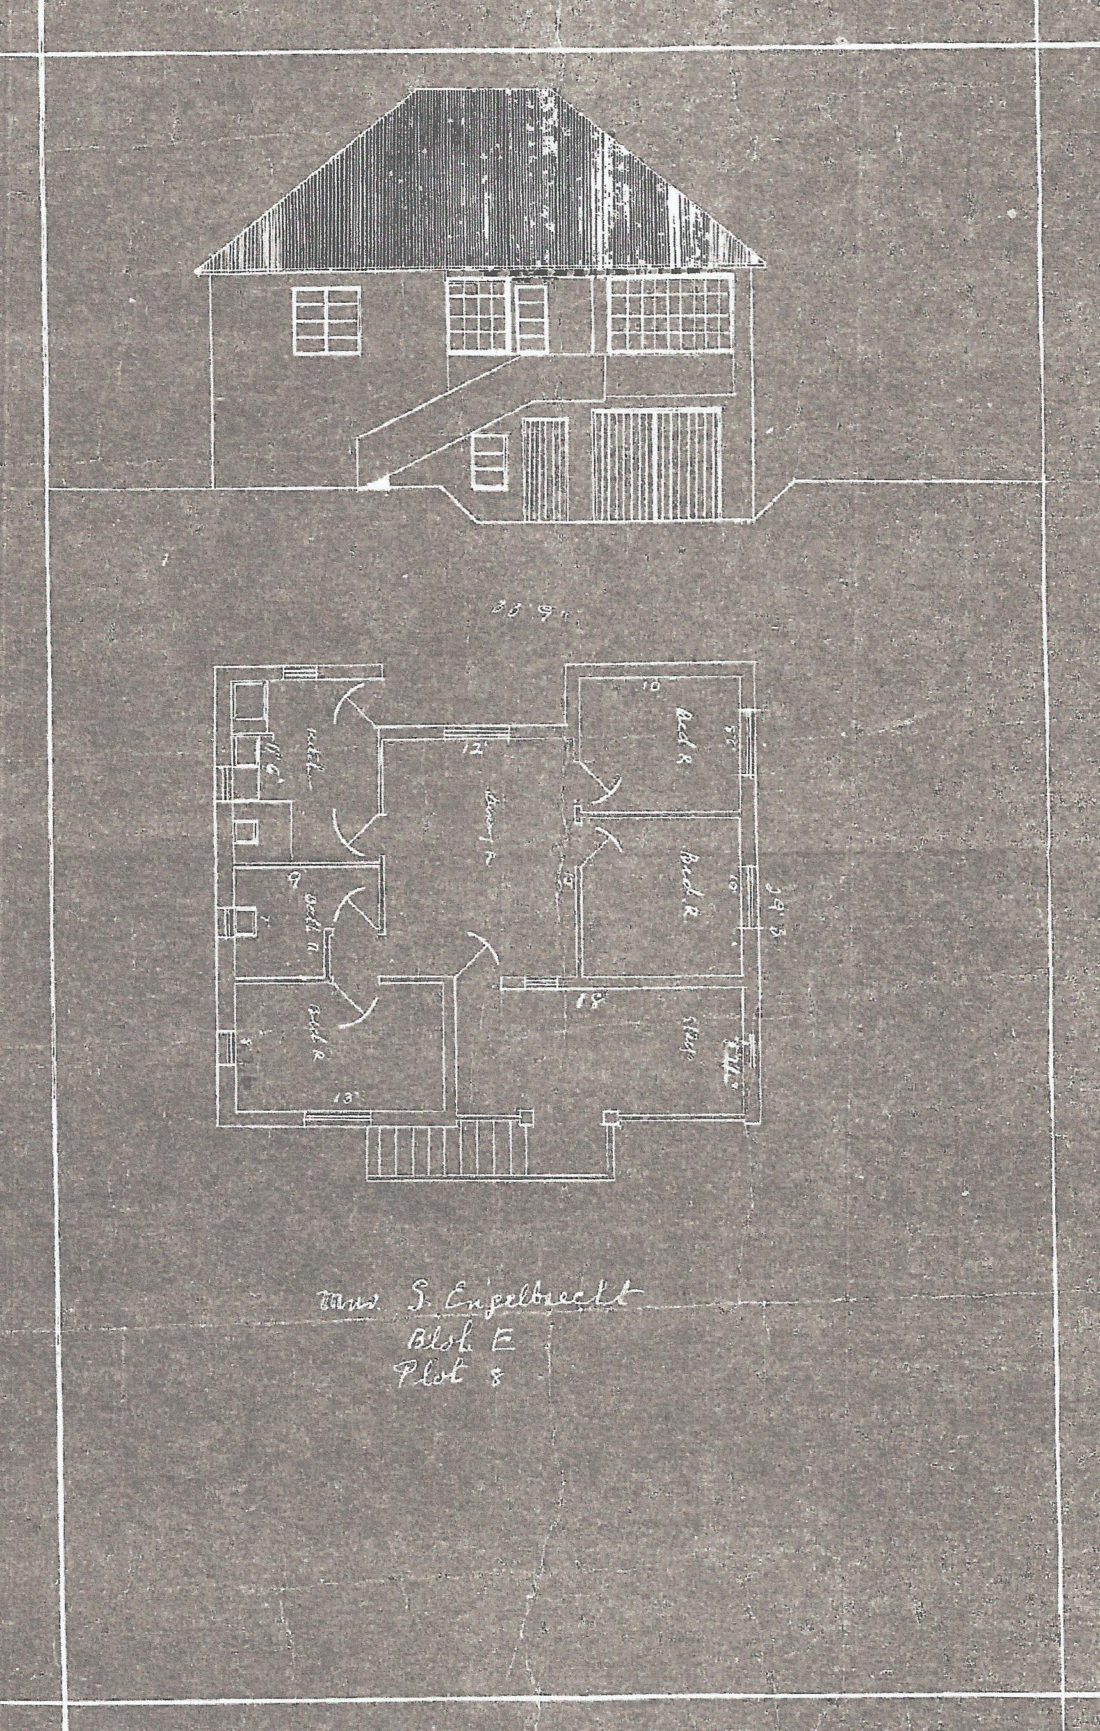 Original building plan, c.1942